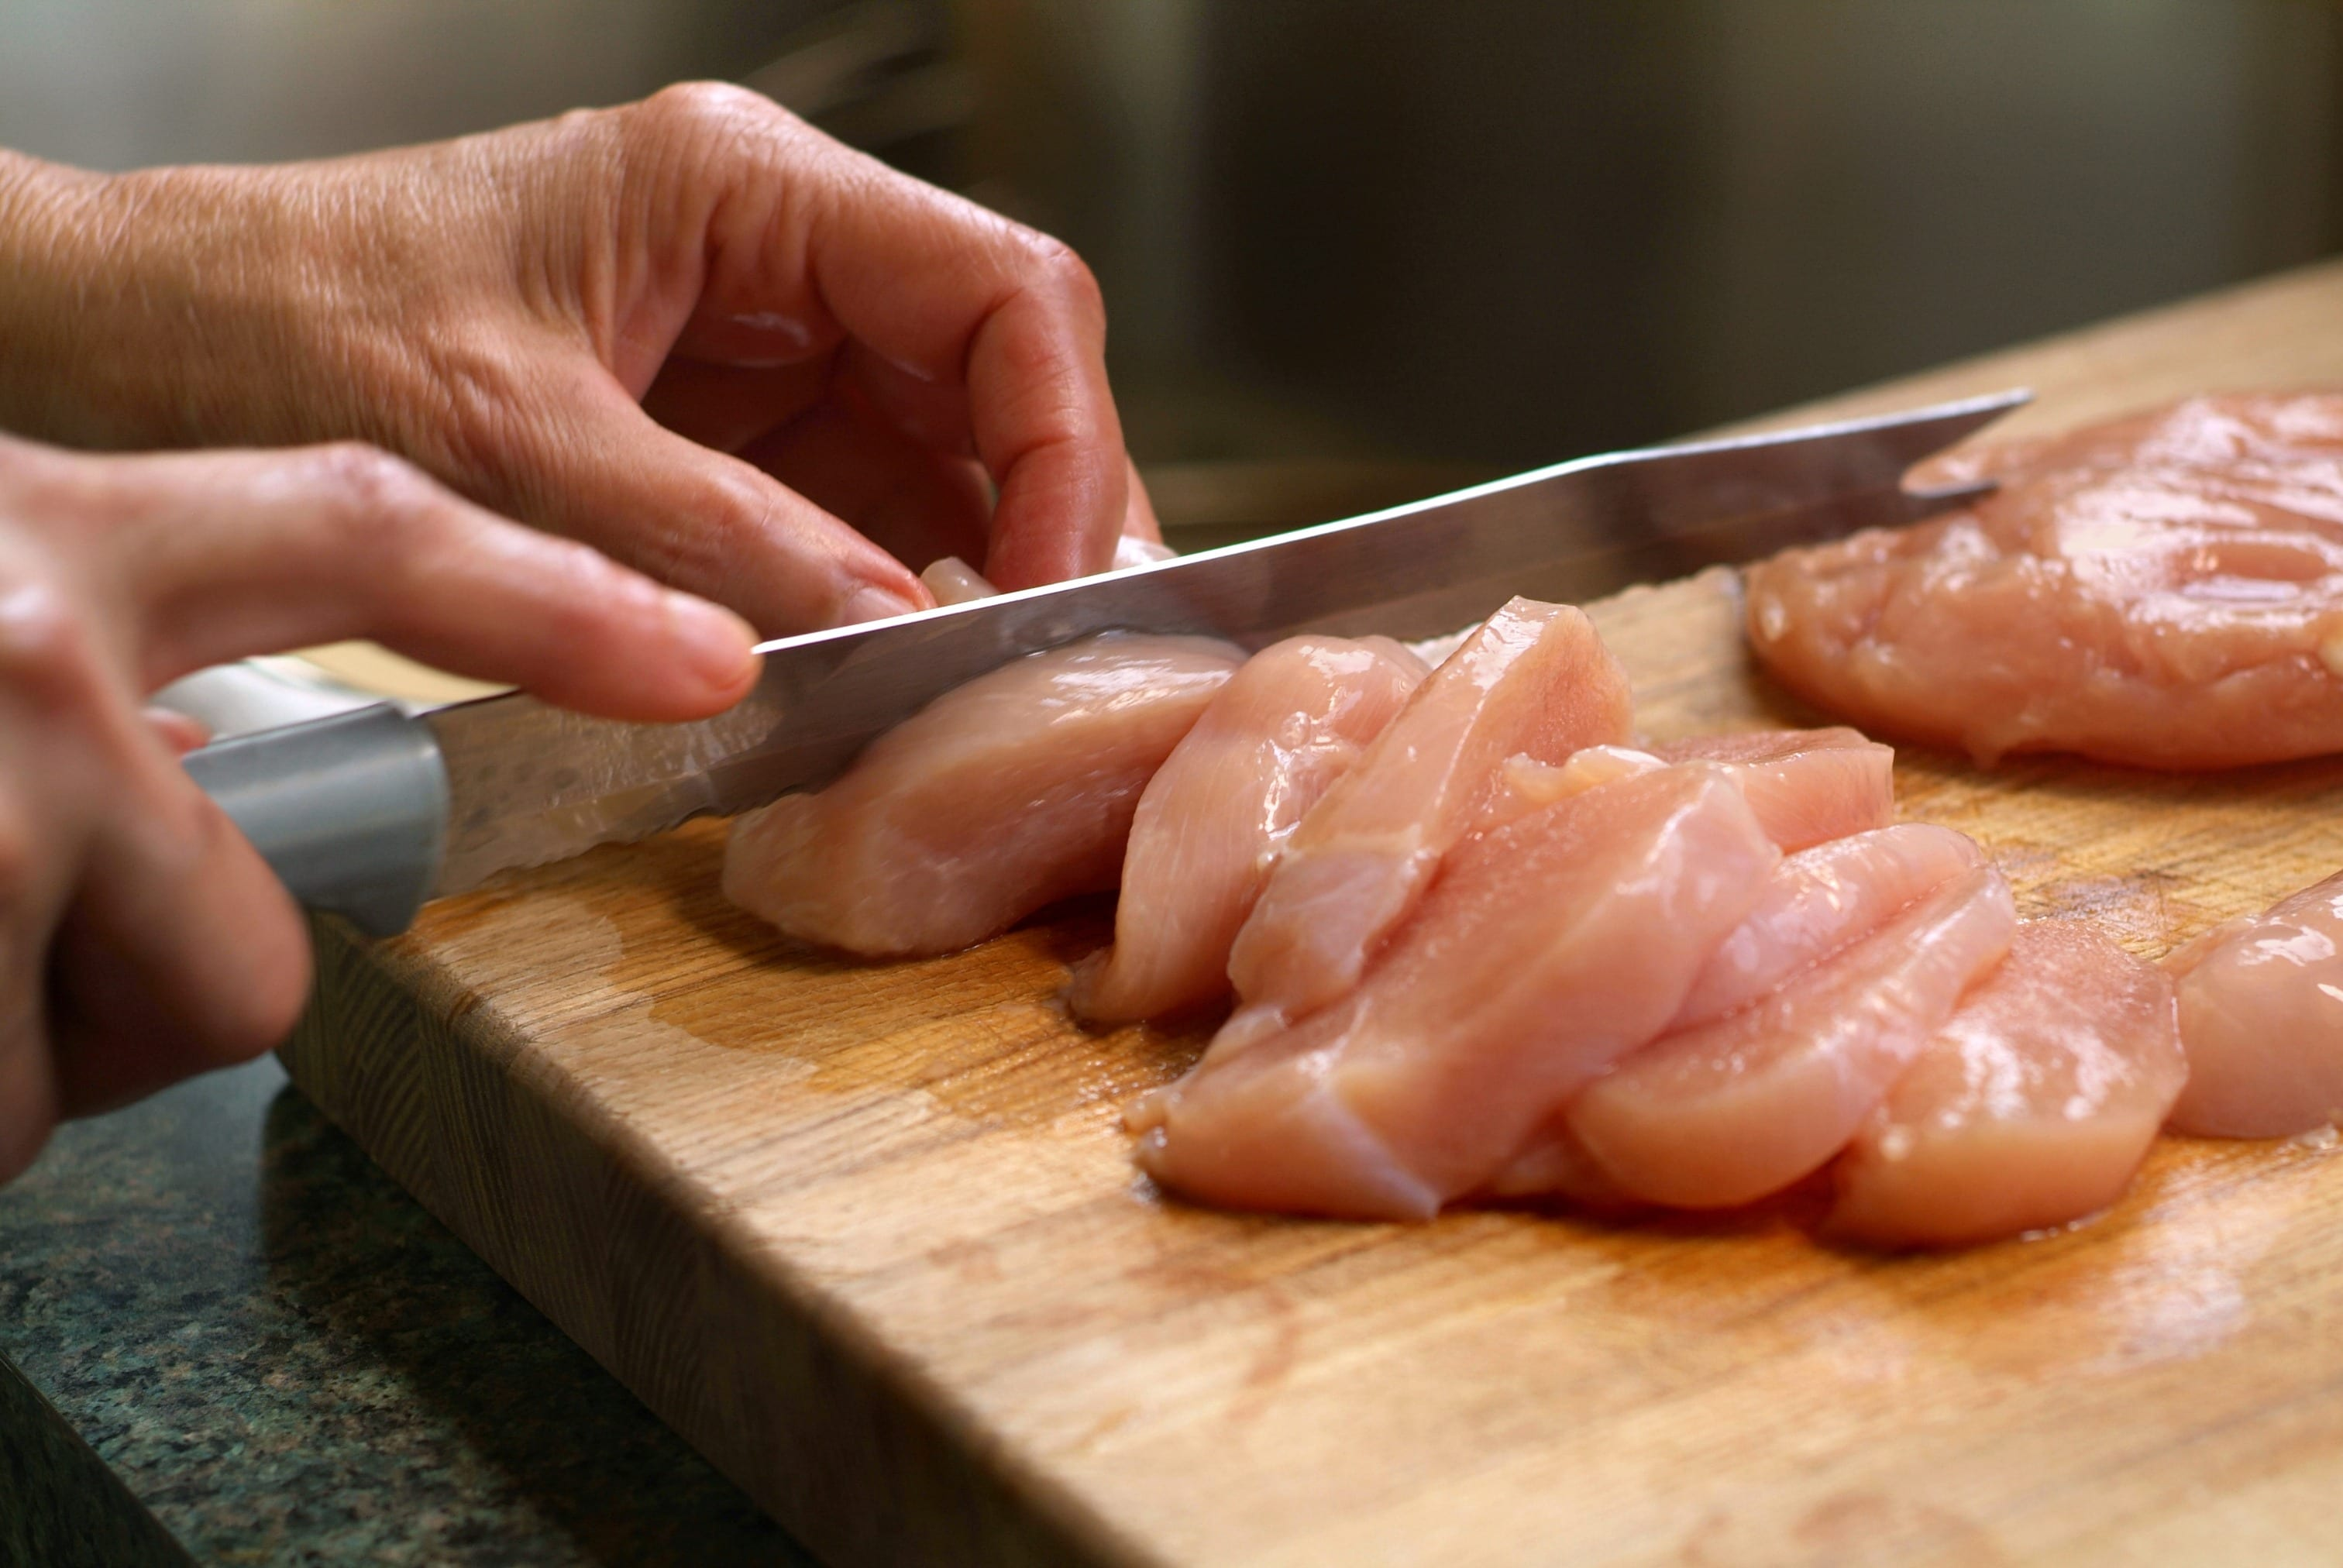 Salmonella Poisoning and How to Avoid It | Meritage Medical